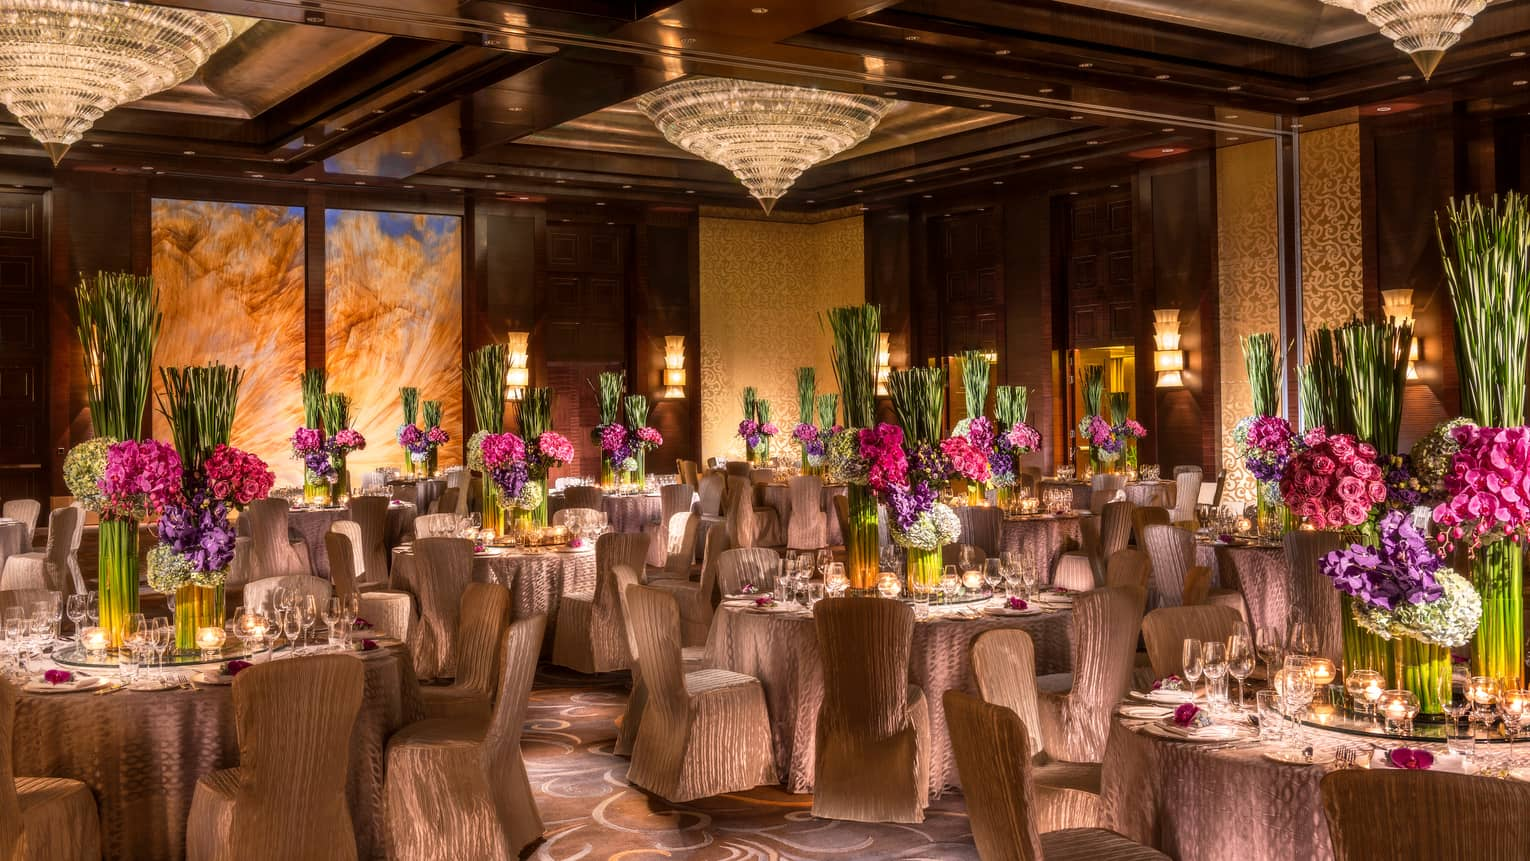 Imperial Ballroom wedding reception with elegant fabric-covered dining chairs, tall floral centrepieces, crystal chandeliers